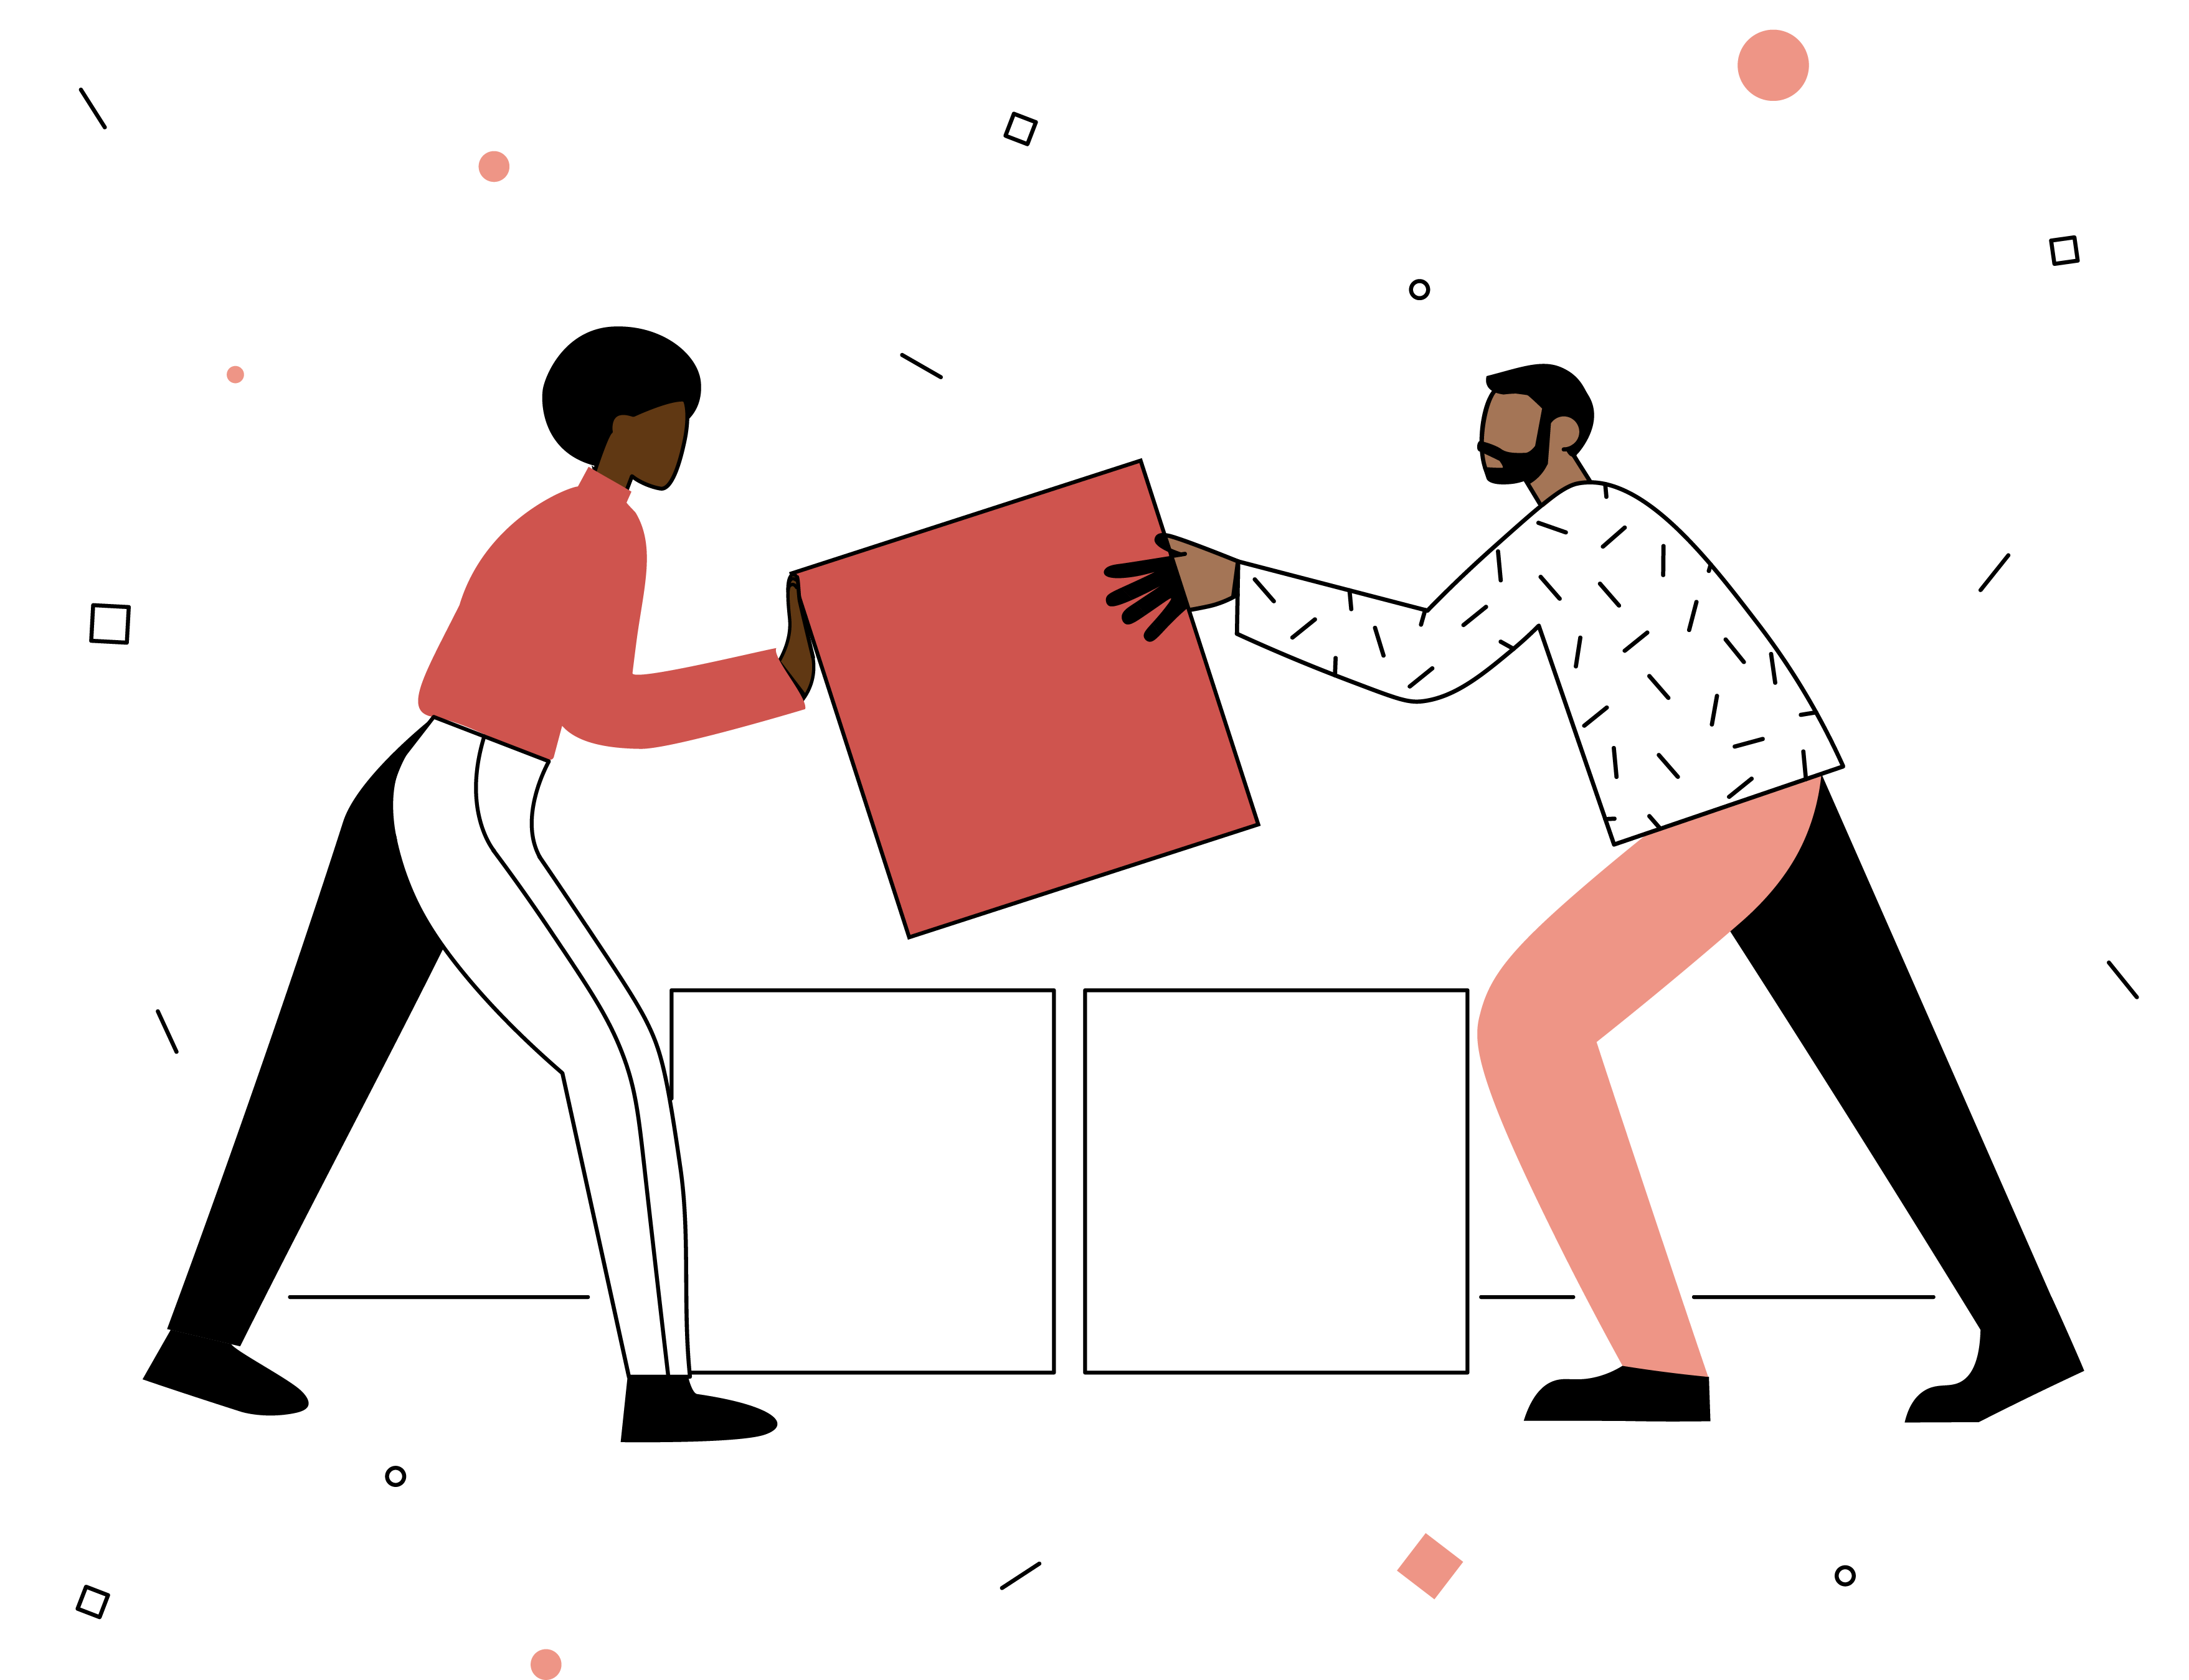 An illustration of two people putting down building blocks collaboratively